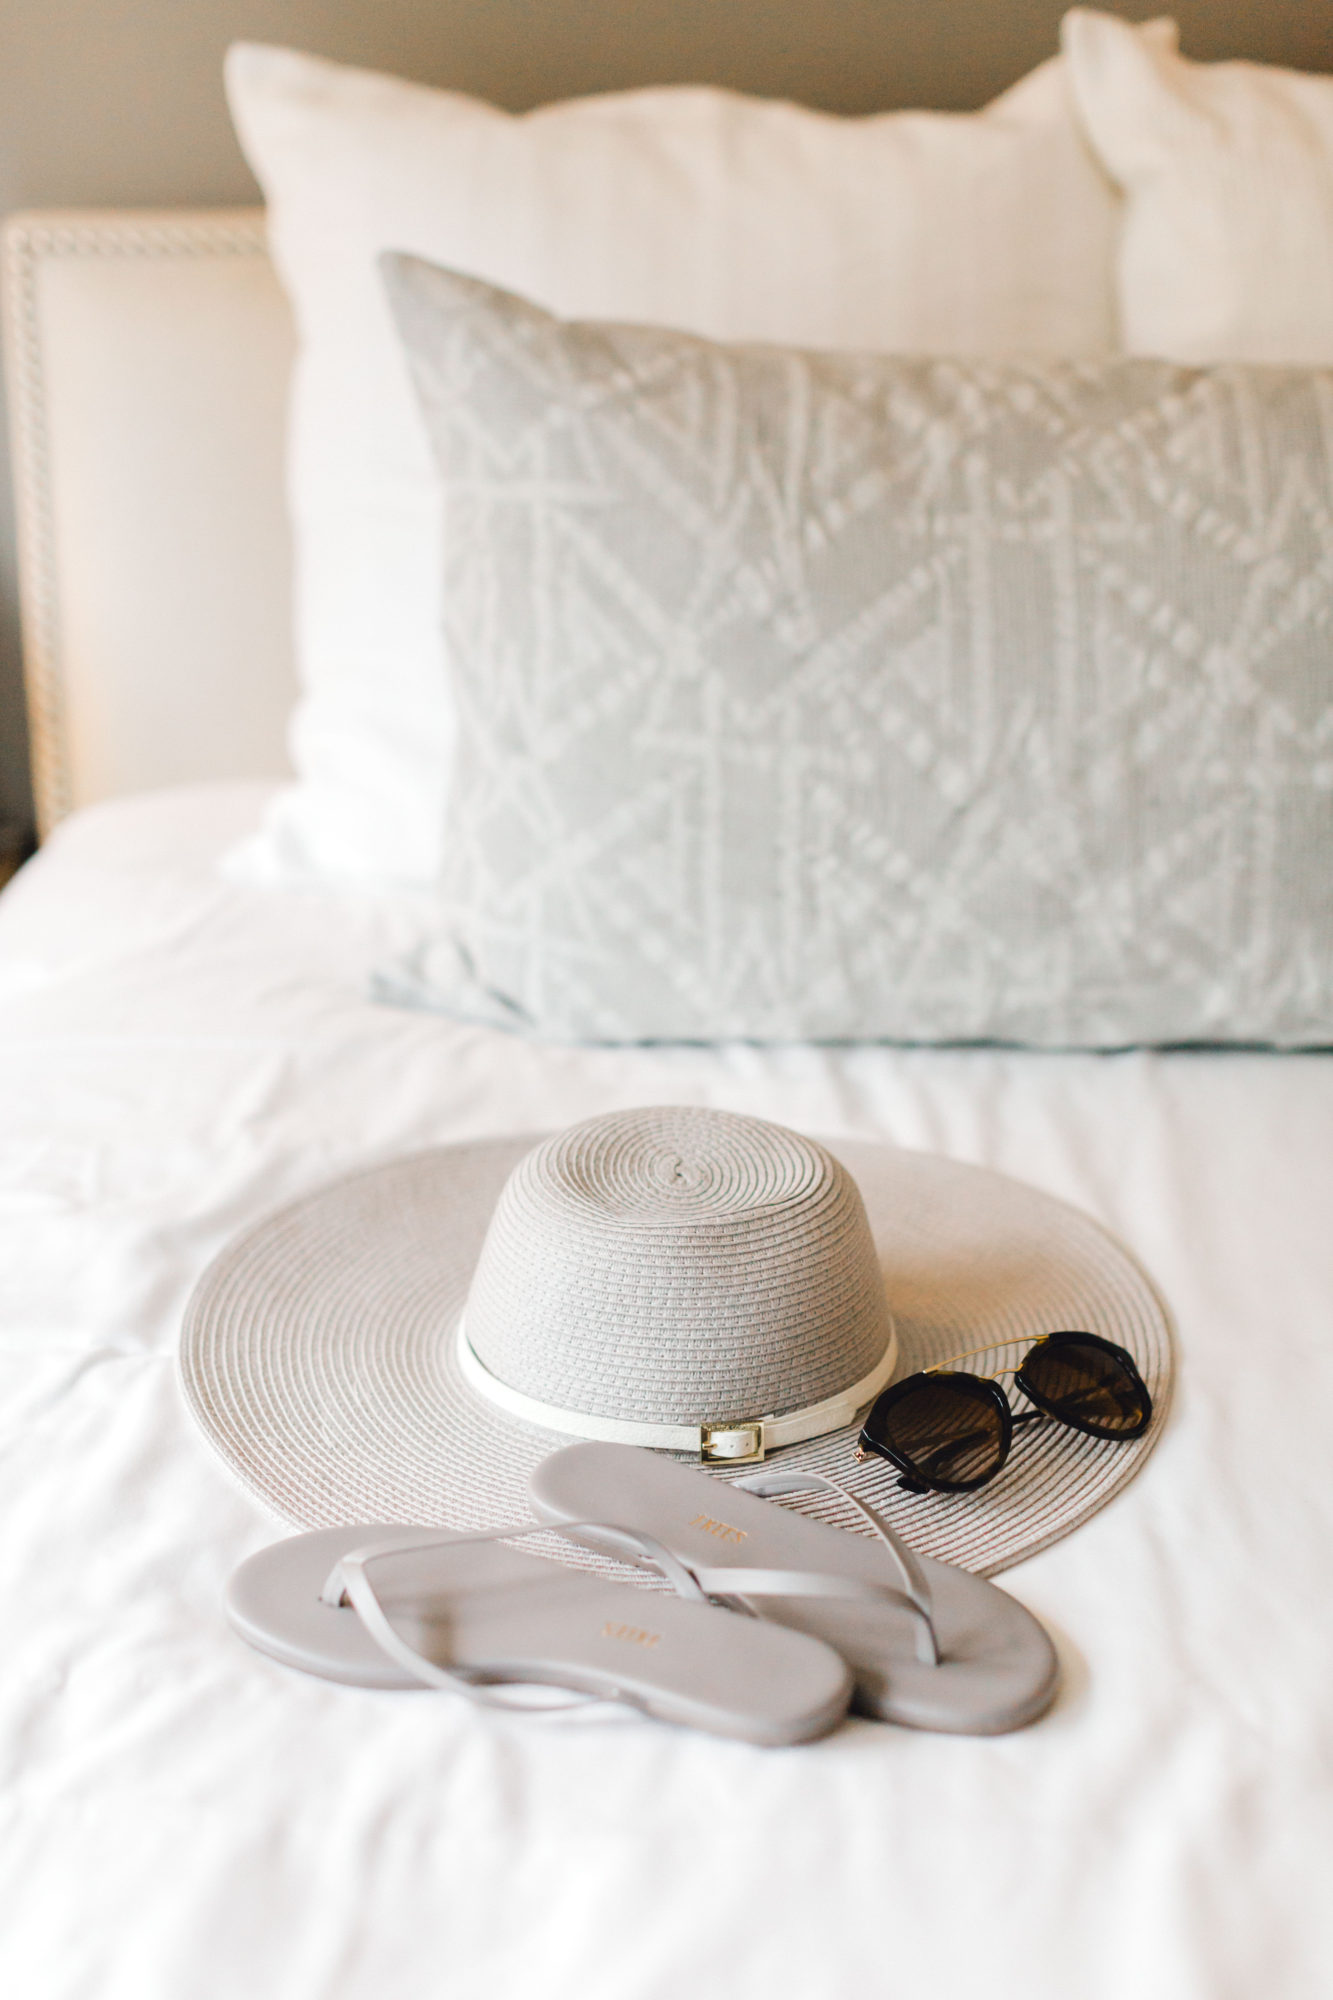 PACKING FOR SUN – CHIC & STYLISH, NOT TRENDY & UNCOMFORTABLE